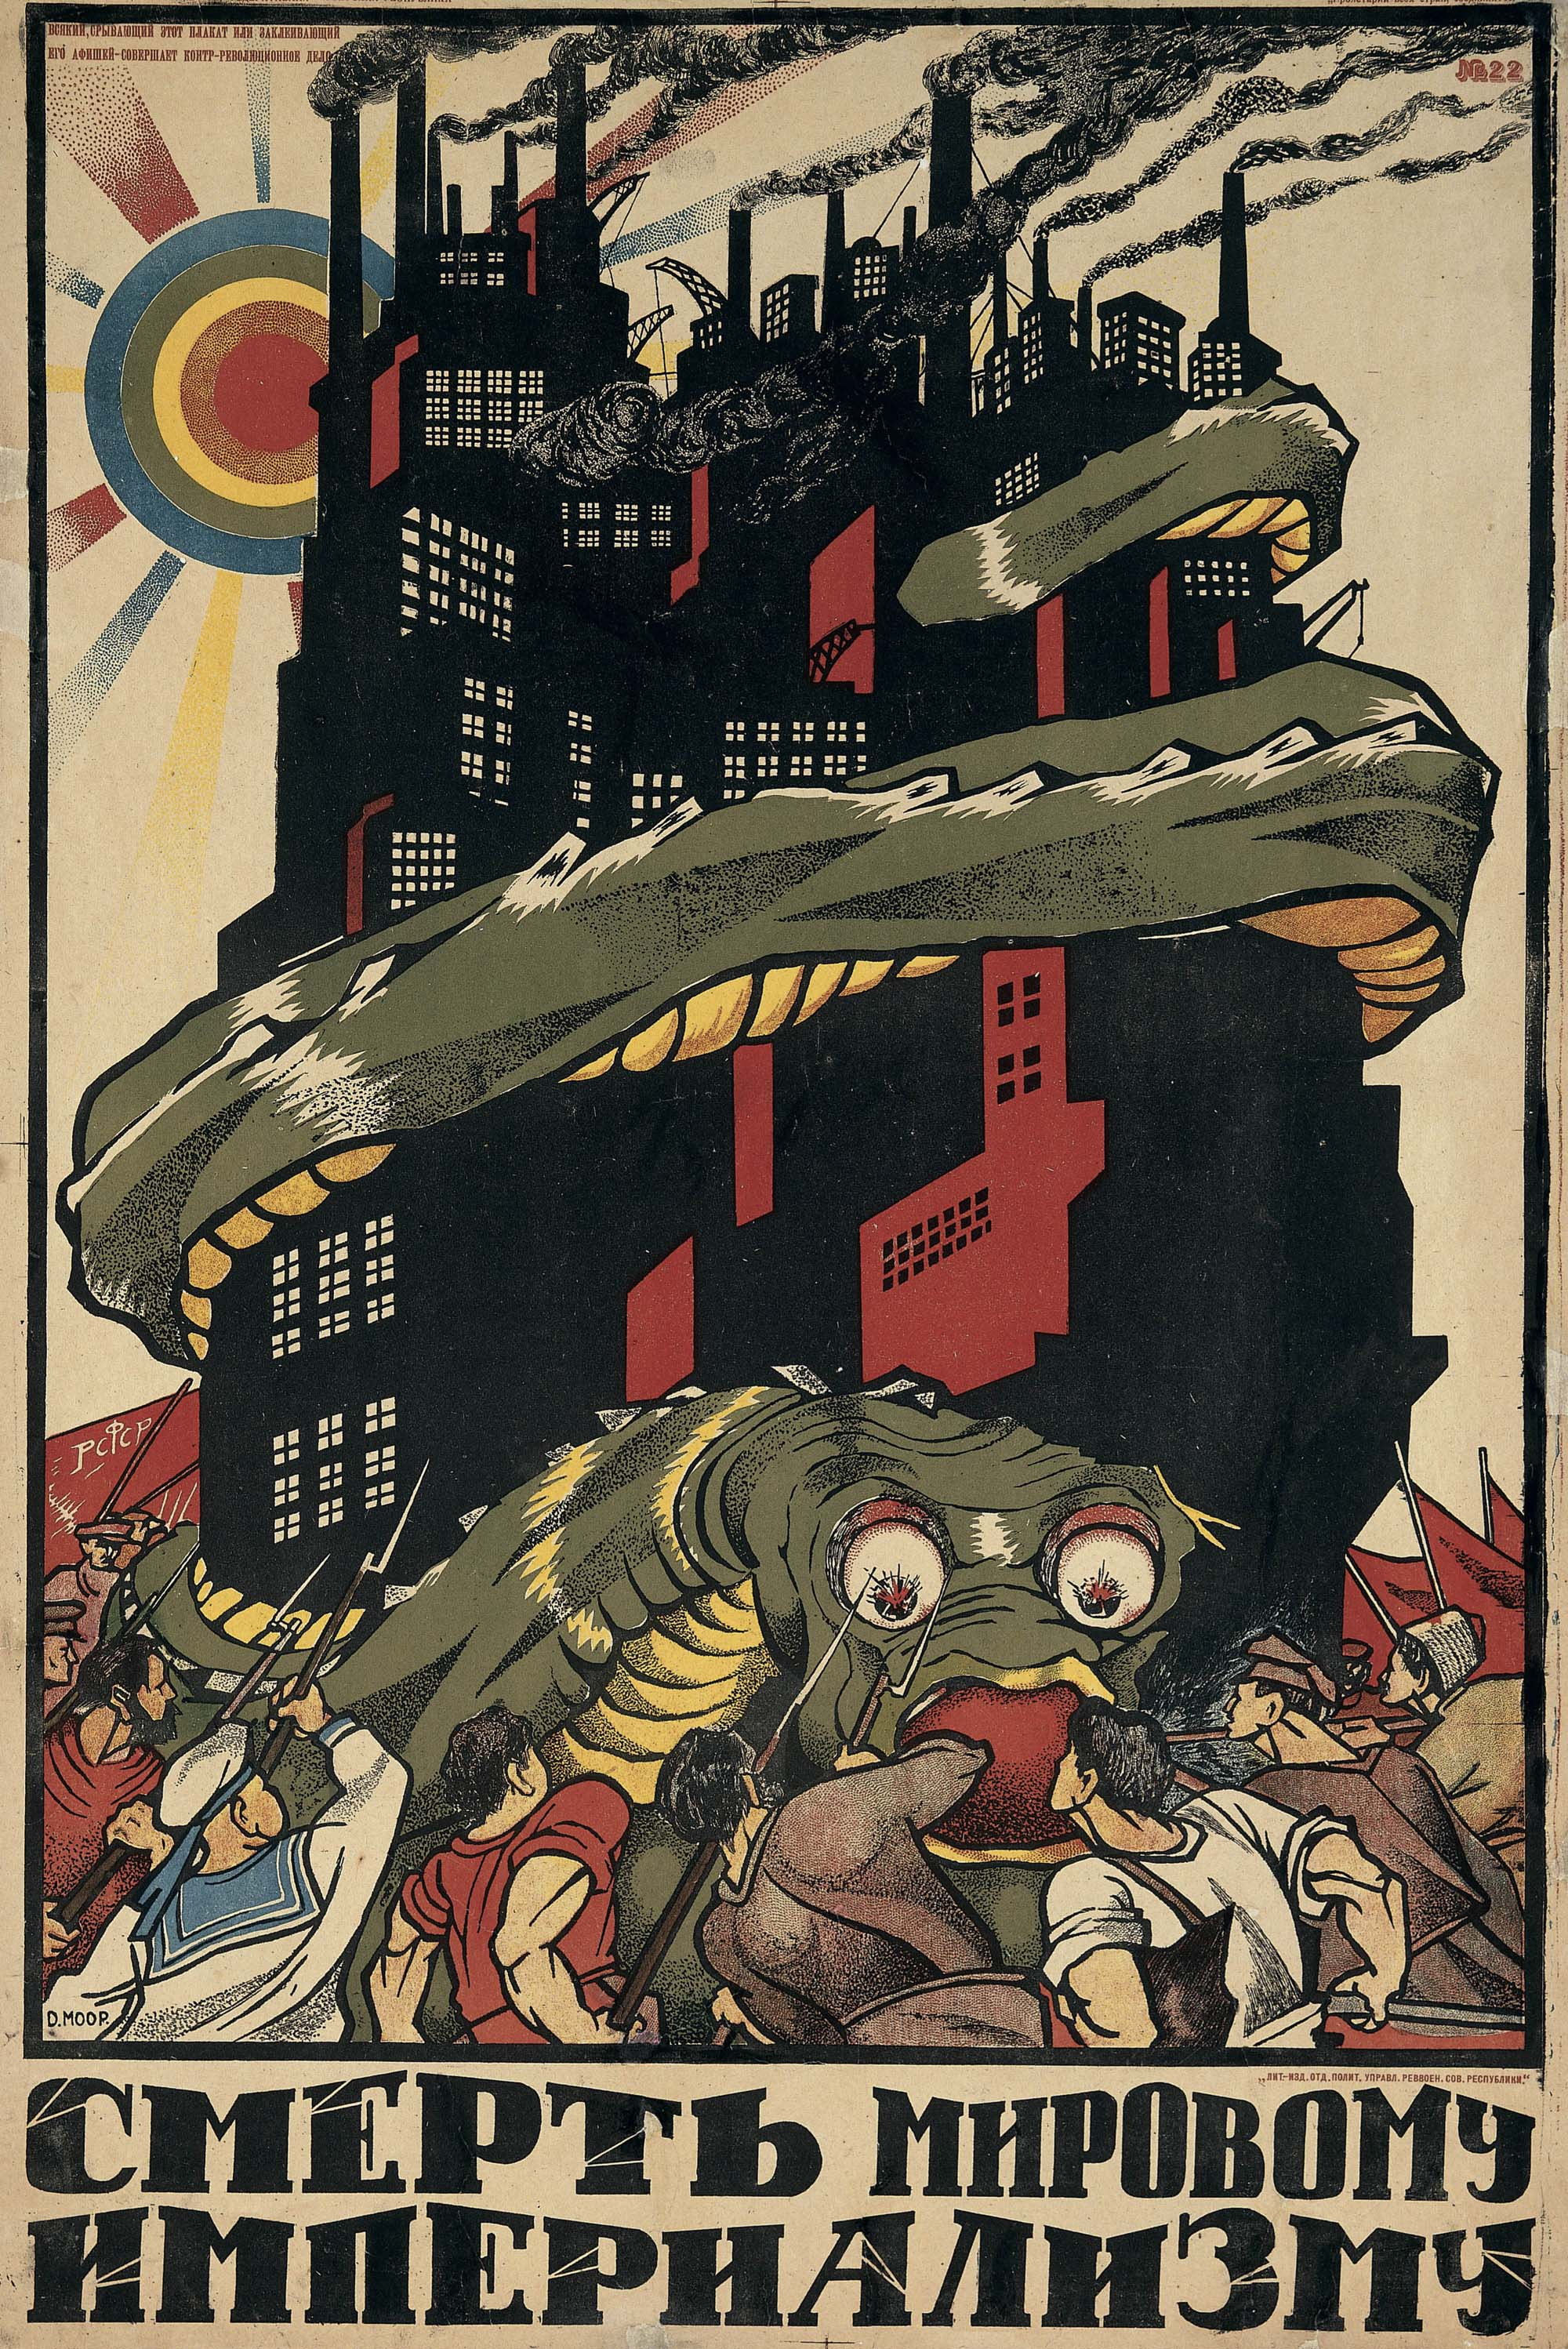 a poster showing a serpent coiling round a building and being attacked by workers banding together